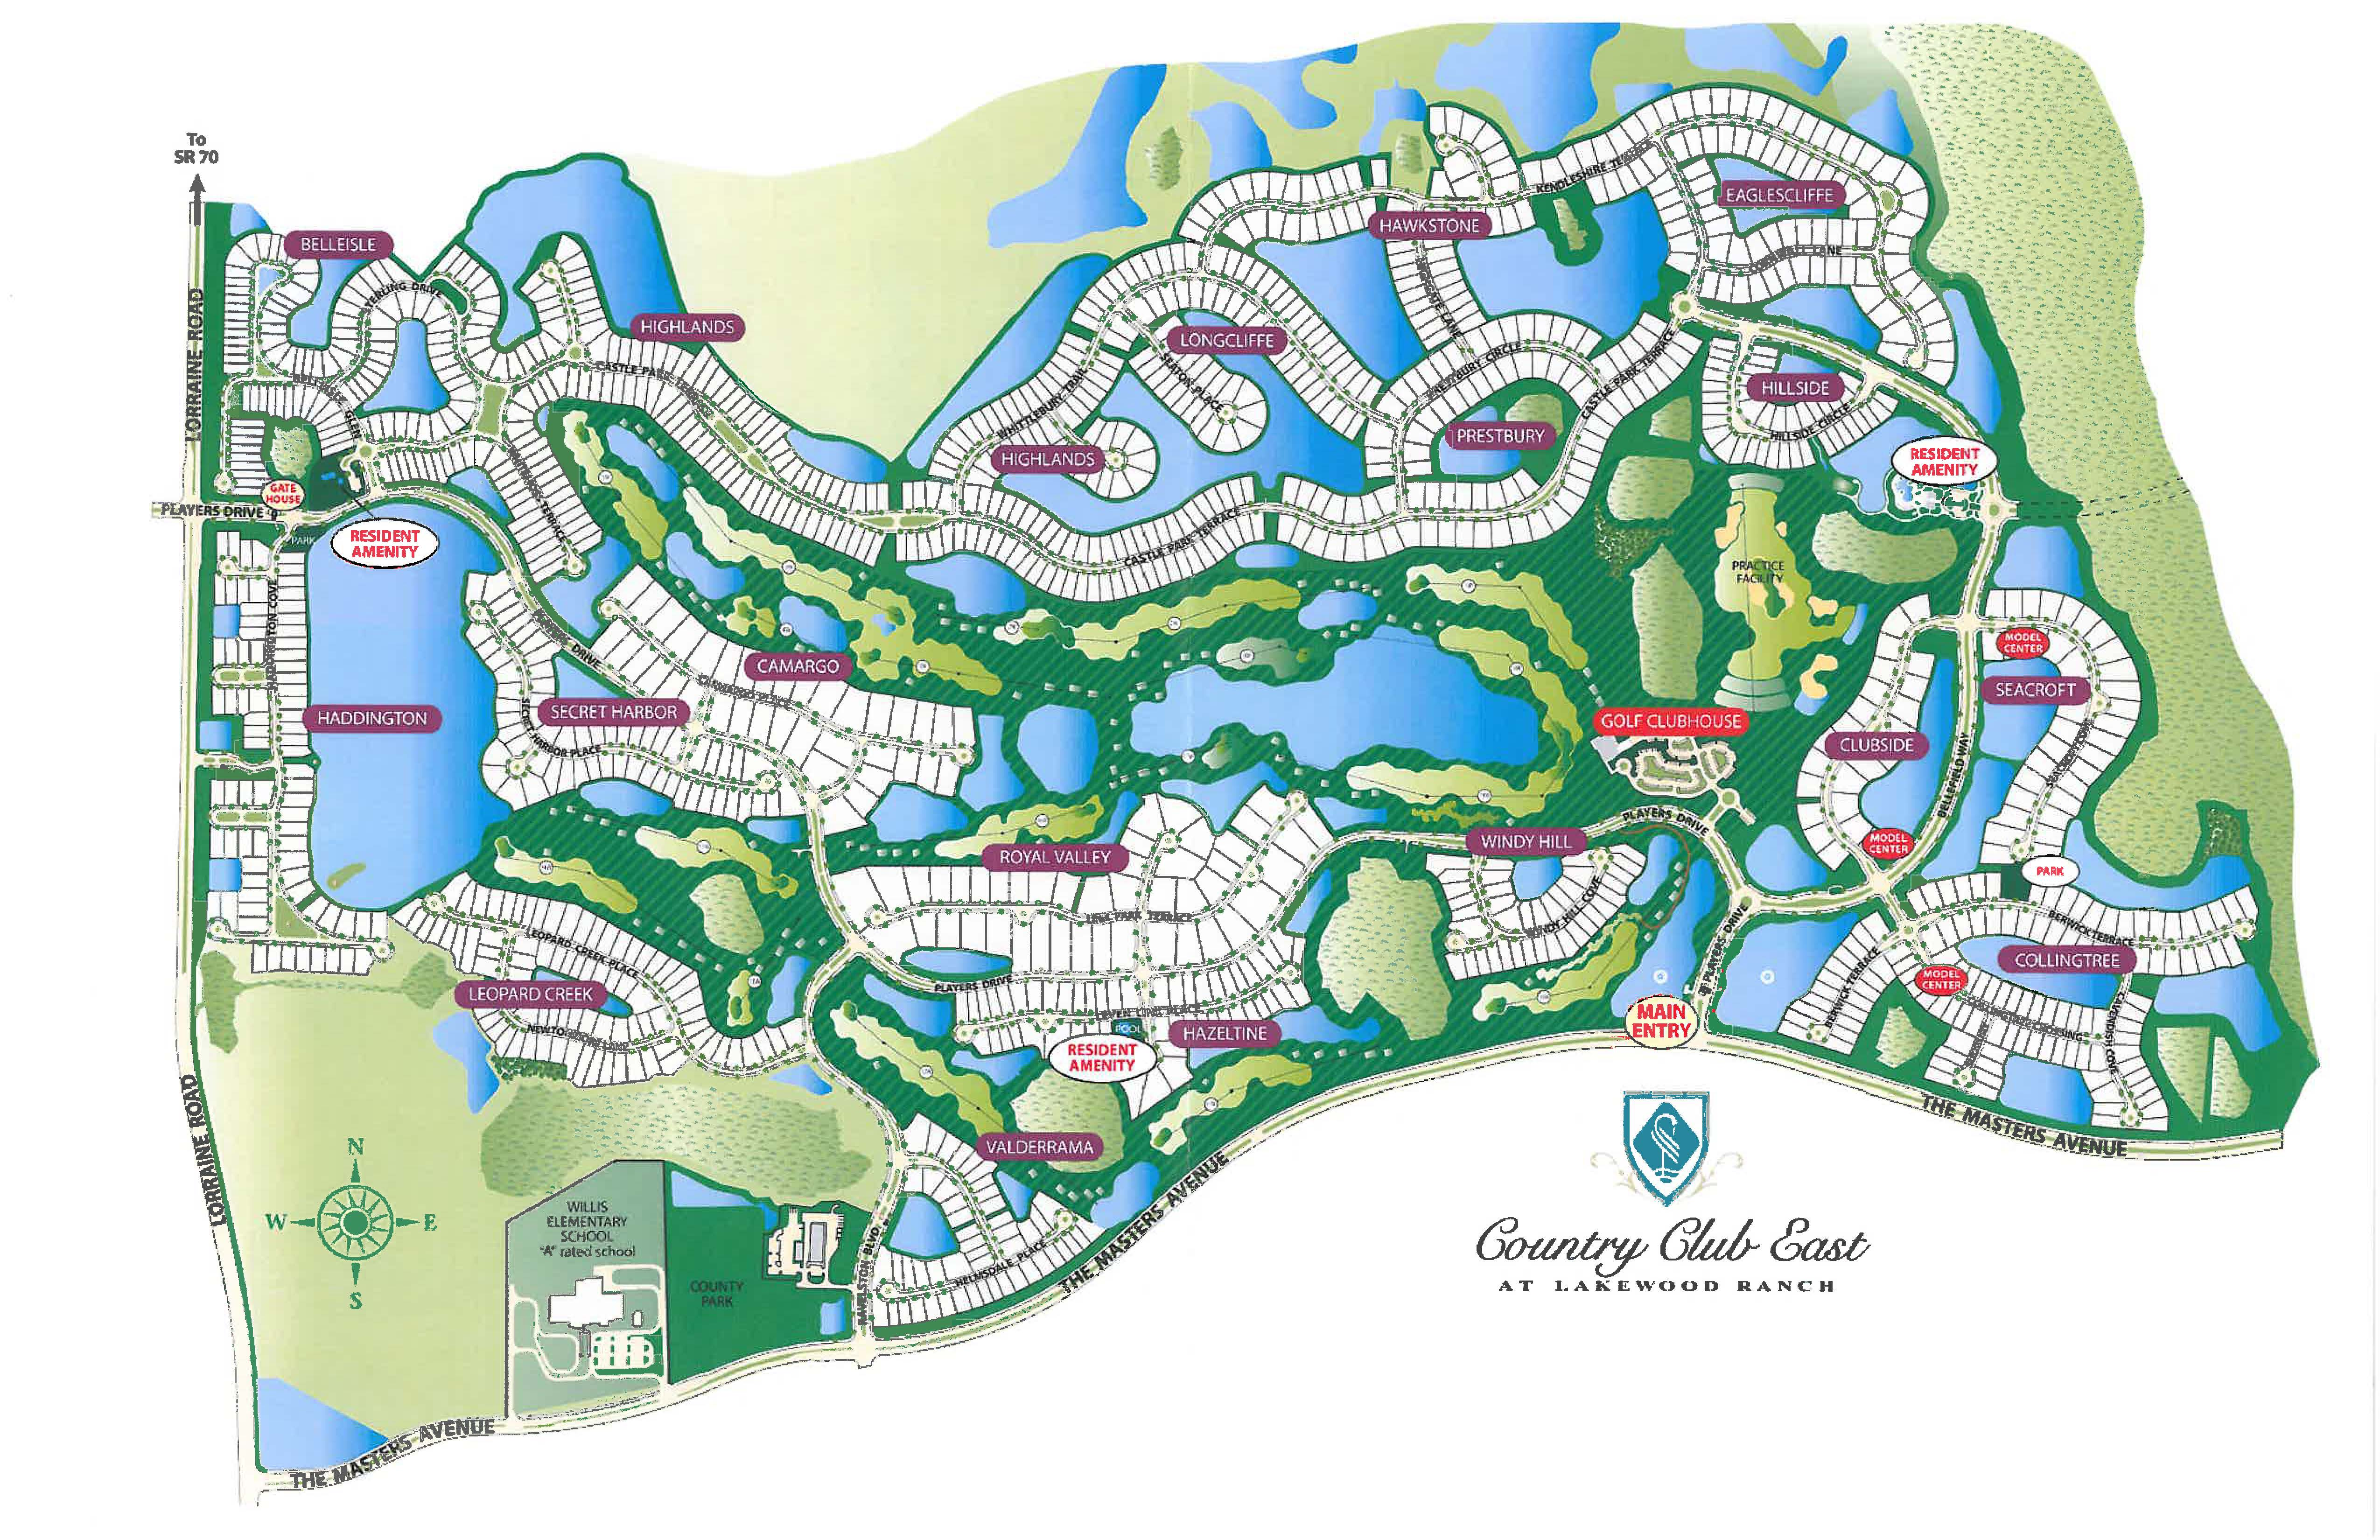 Map of Country Club East